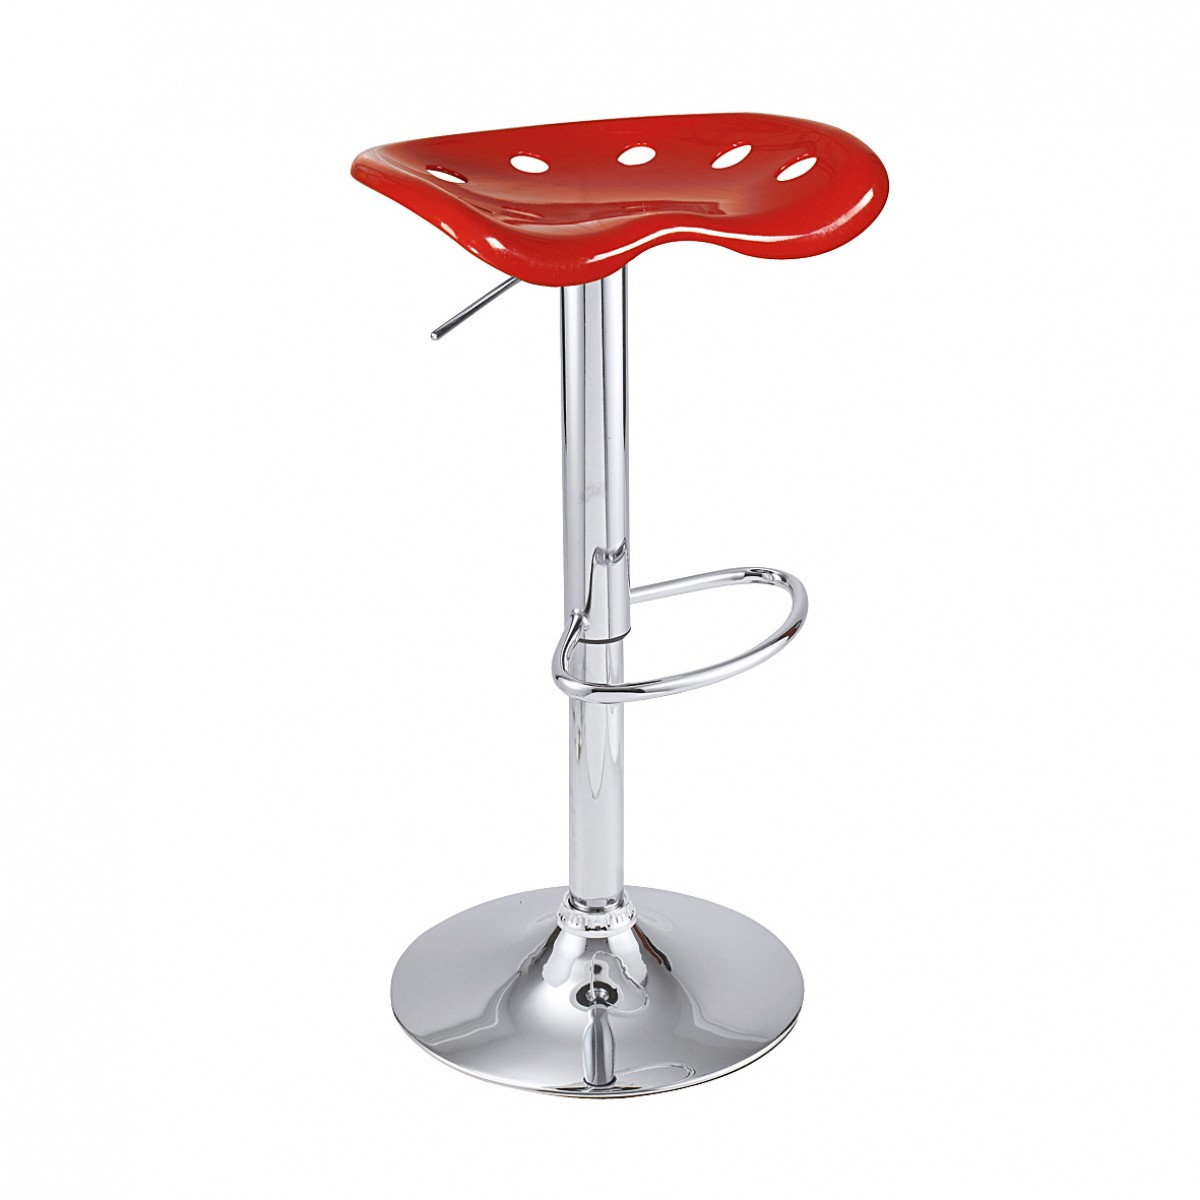 Tabouret de bar claudia rouge lot de 2 mooviin - Tabouret de bar design rouge ...